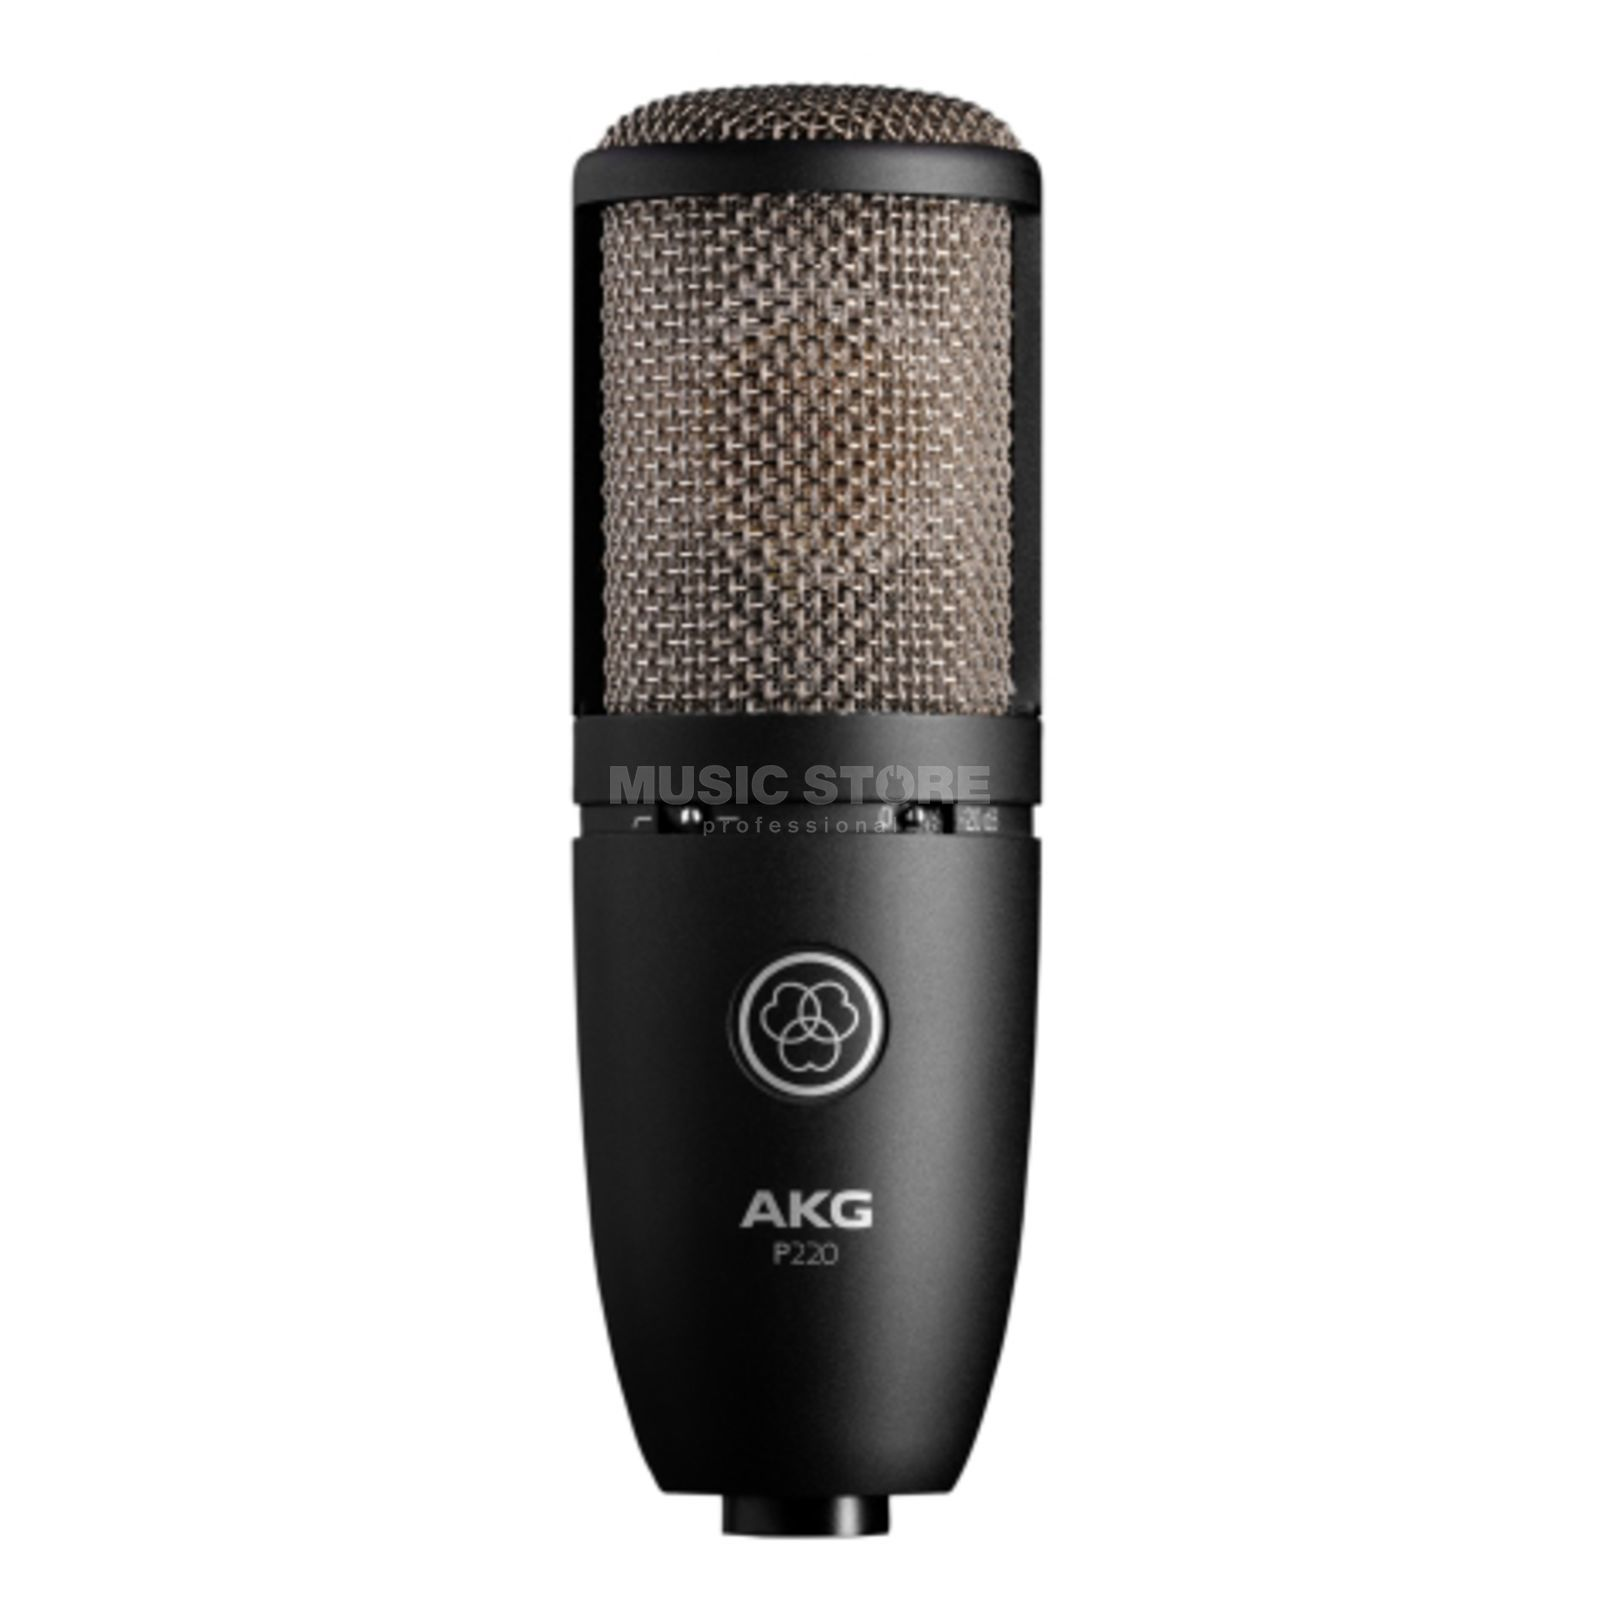 AKG P220  Product Image